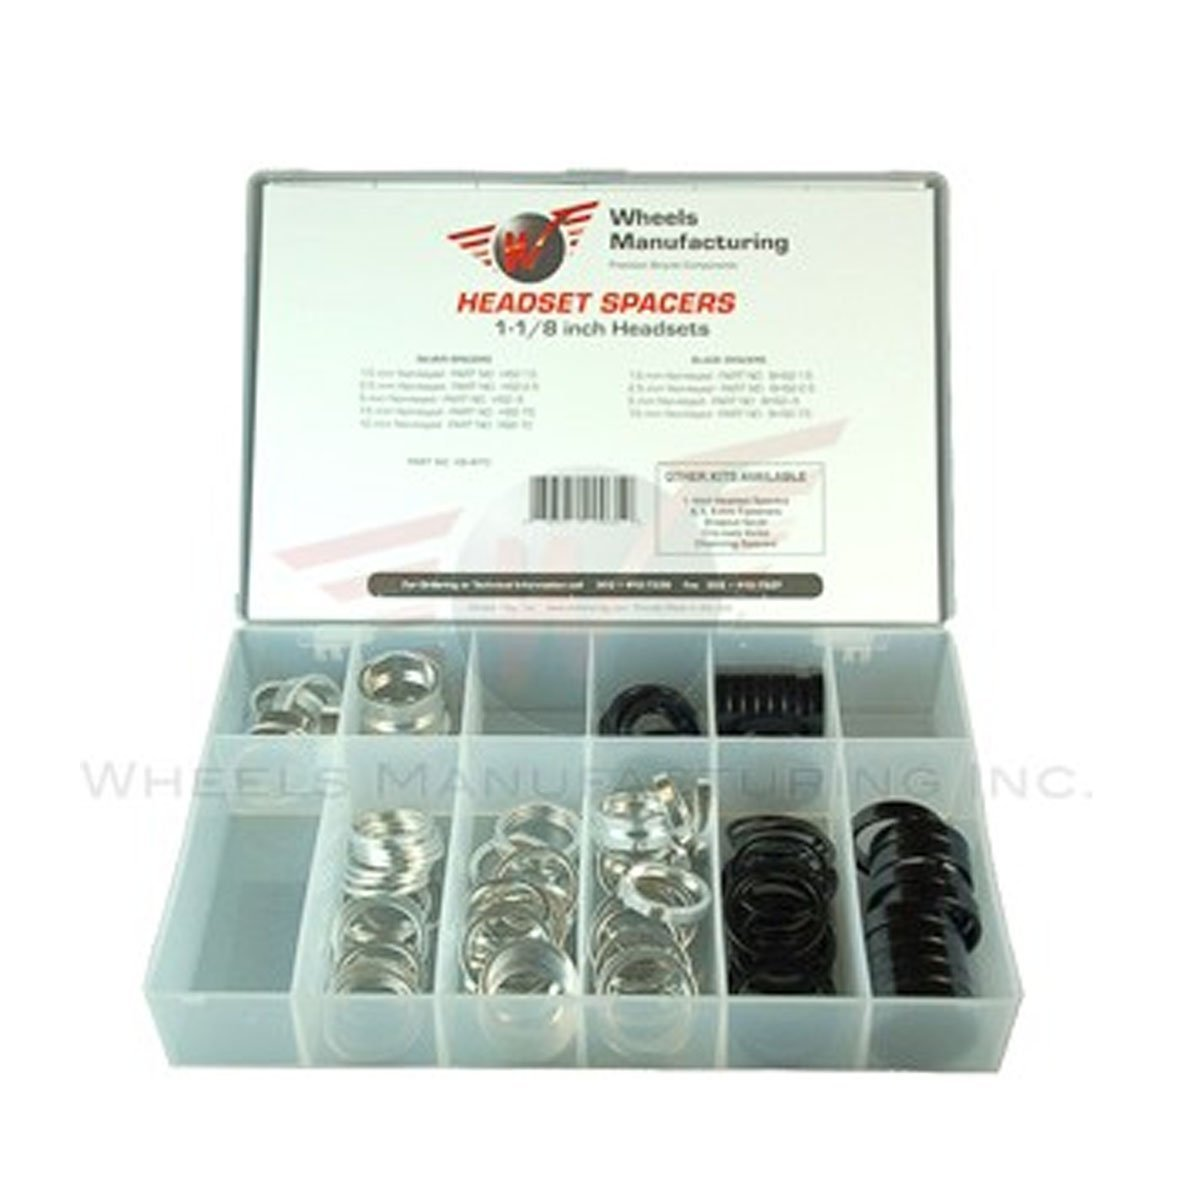 Wheels Manufacturing Assorted Spacers Kit (105-Piece), 1-1/8-Inch